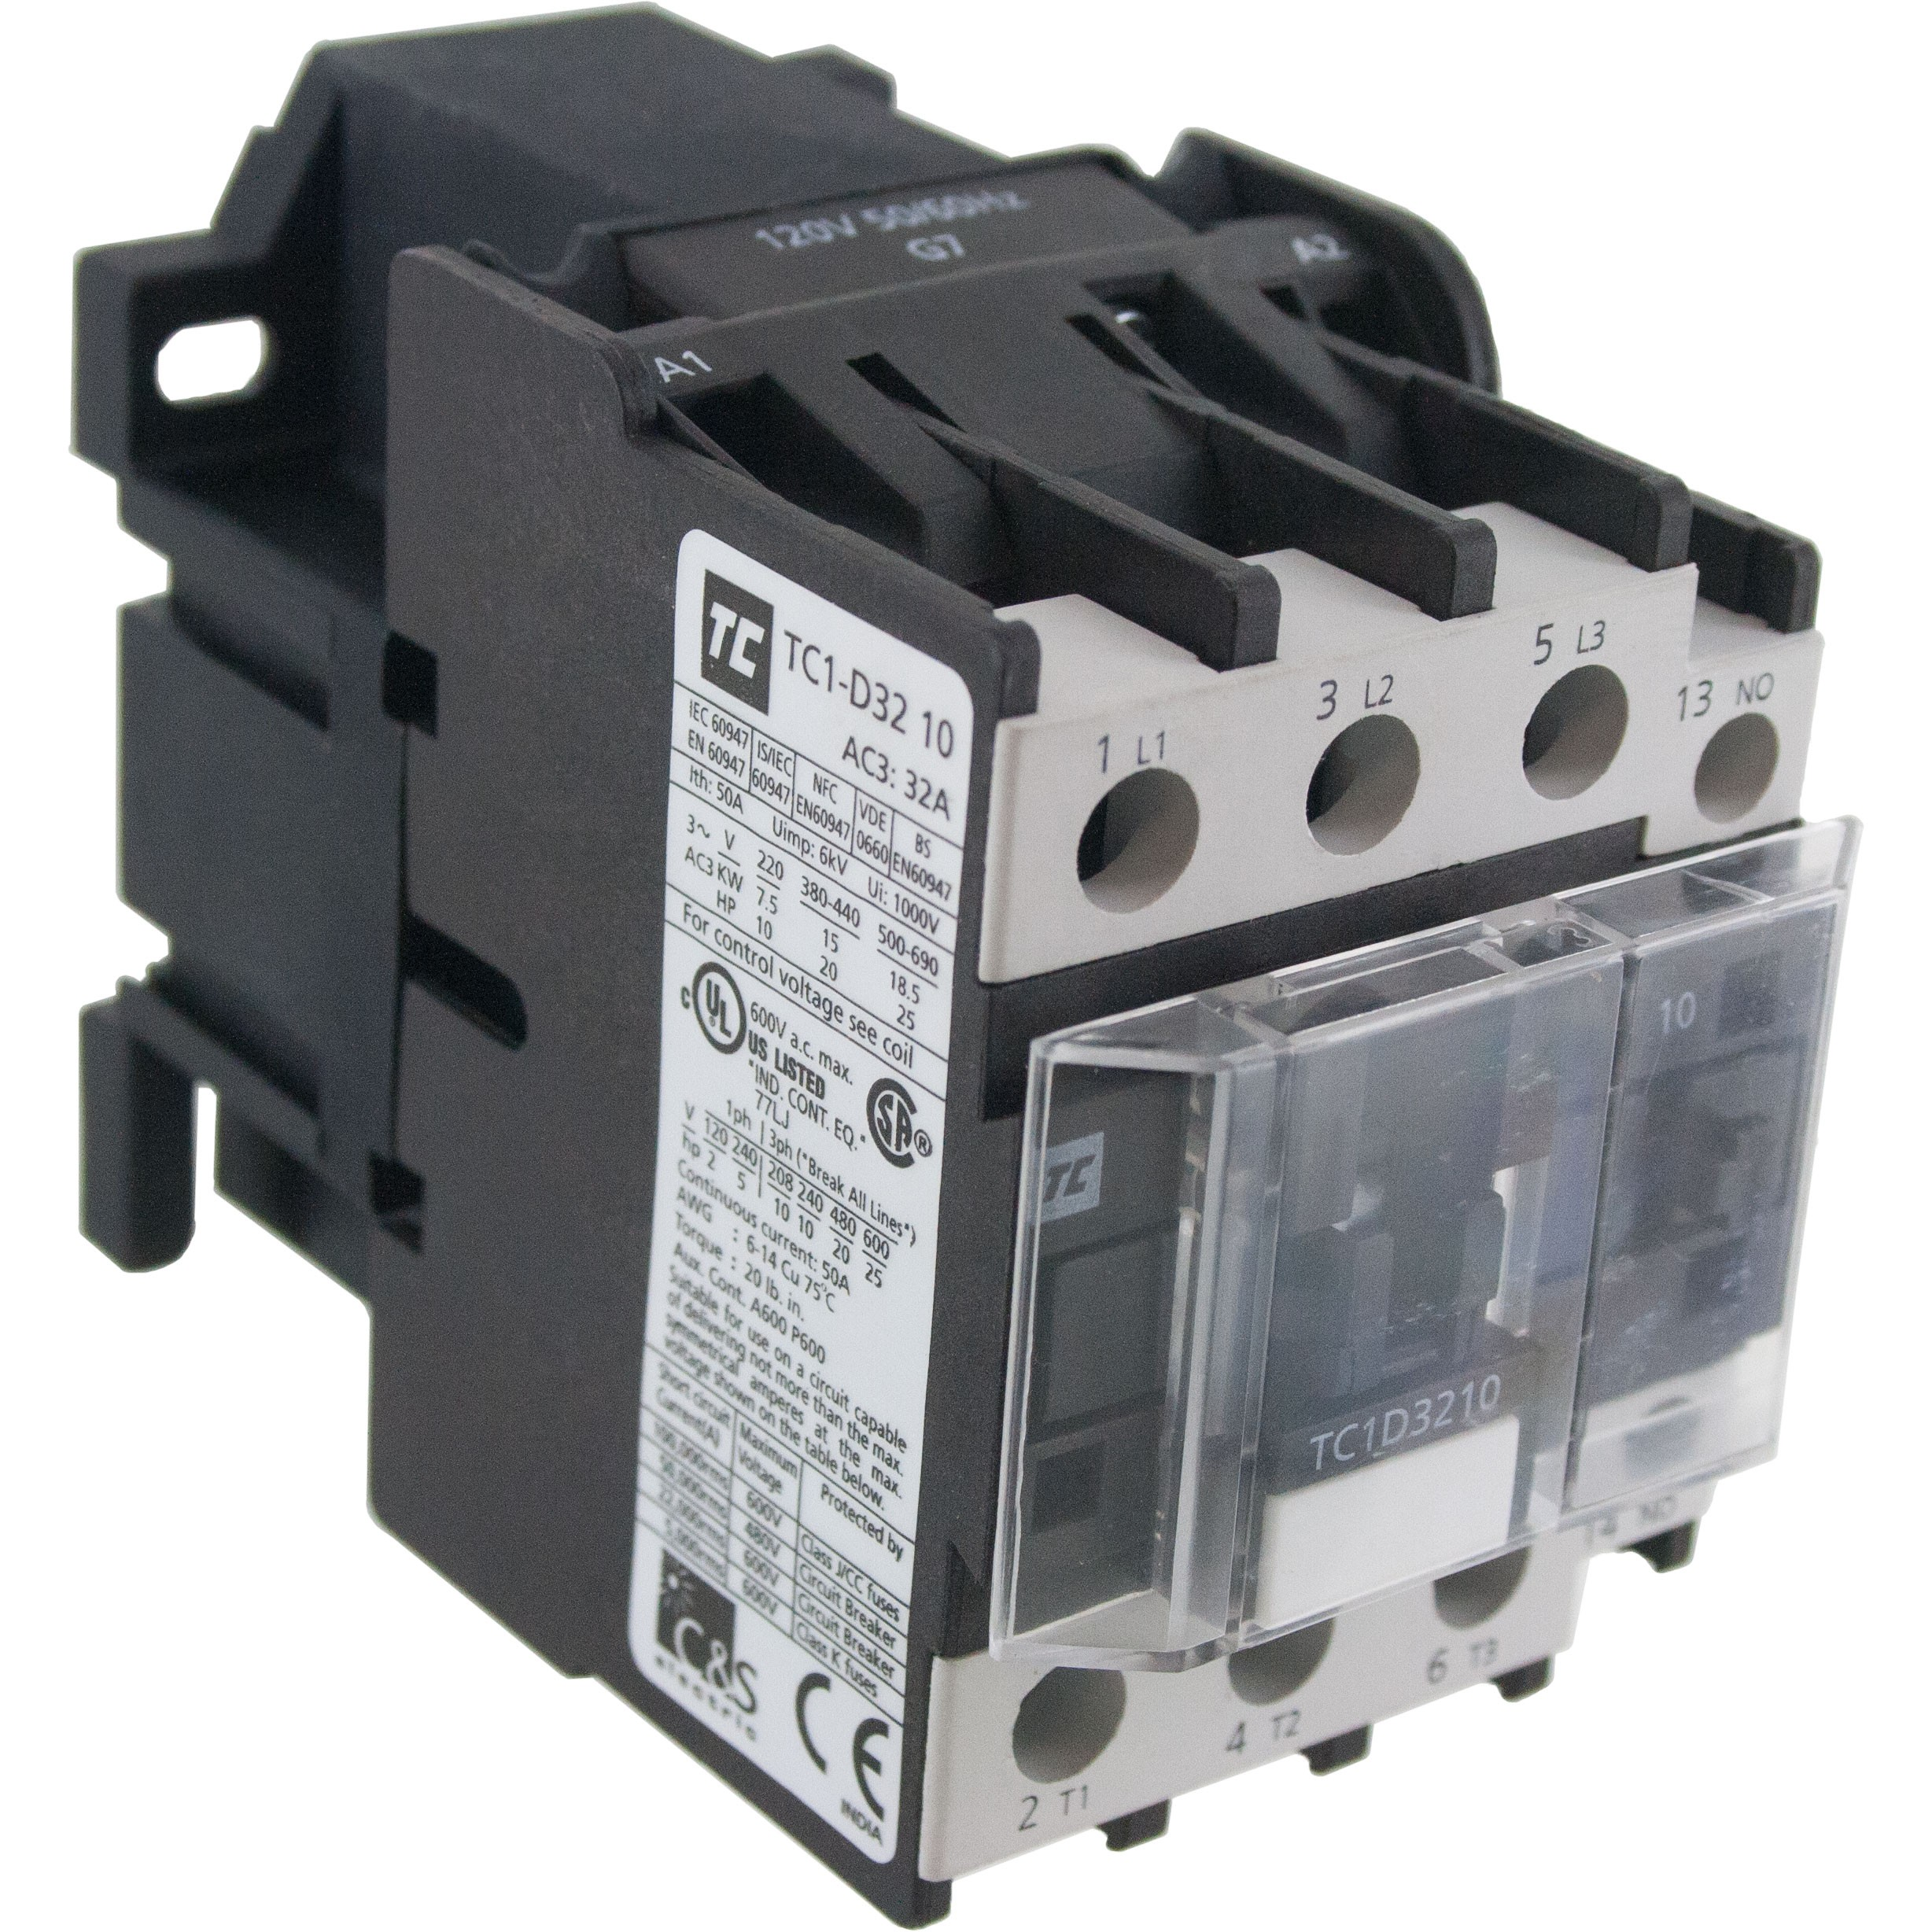 3 Pole Contactor 32 Amp 1 N/O 208 Volt AC Coil Angle